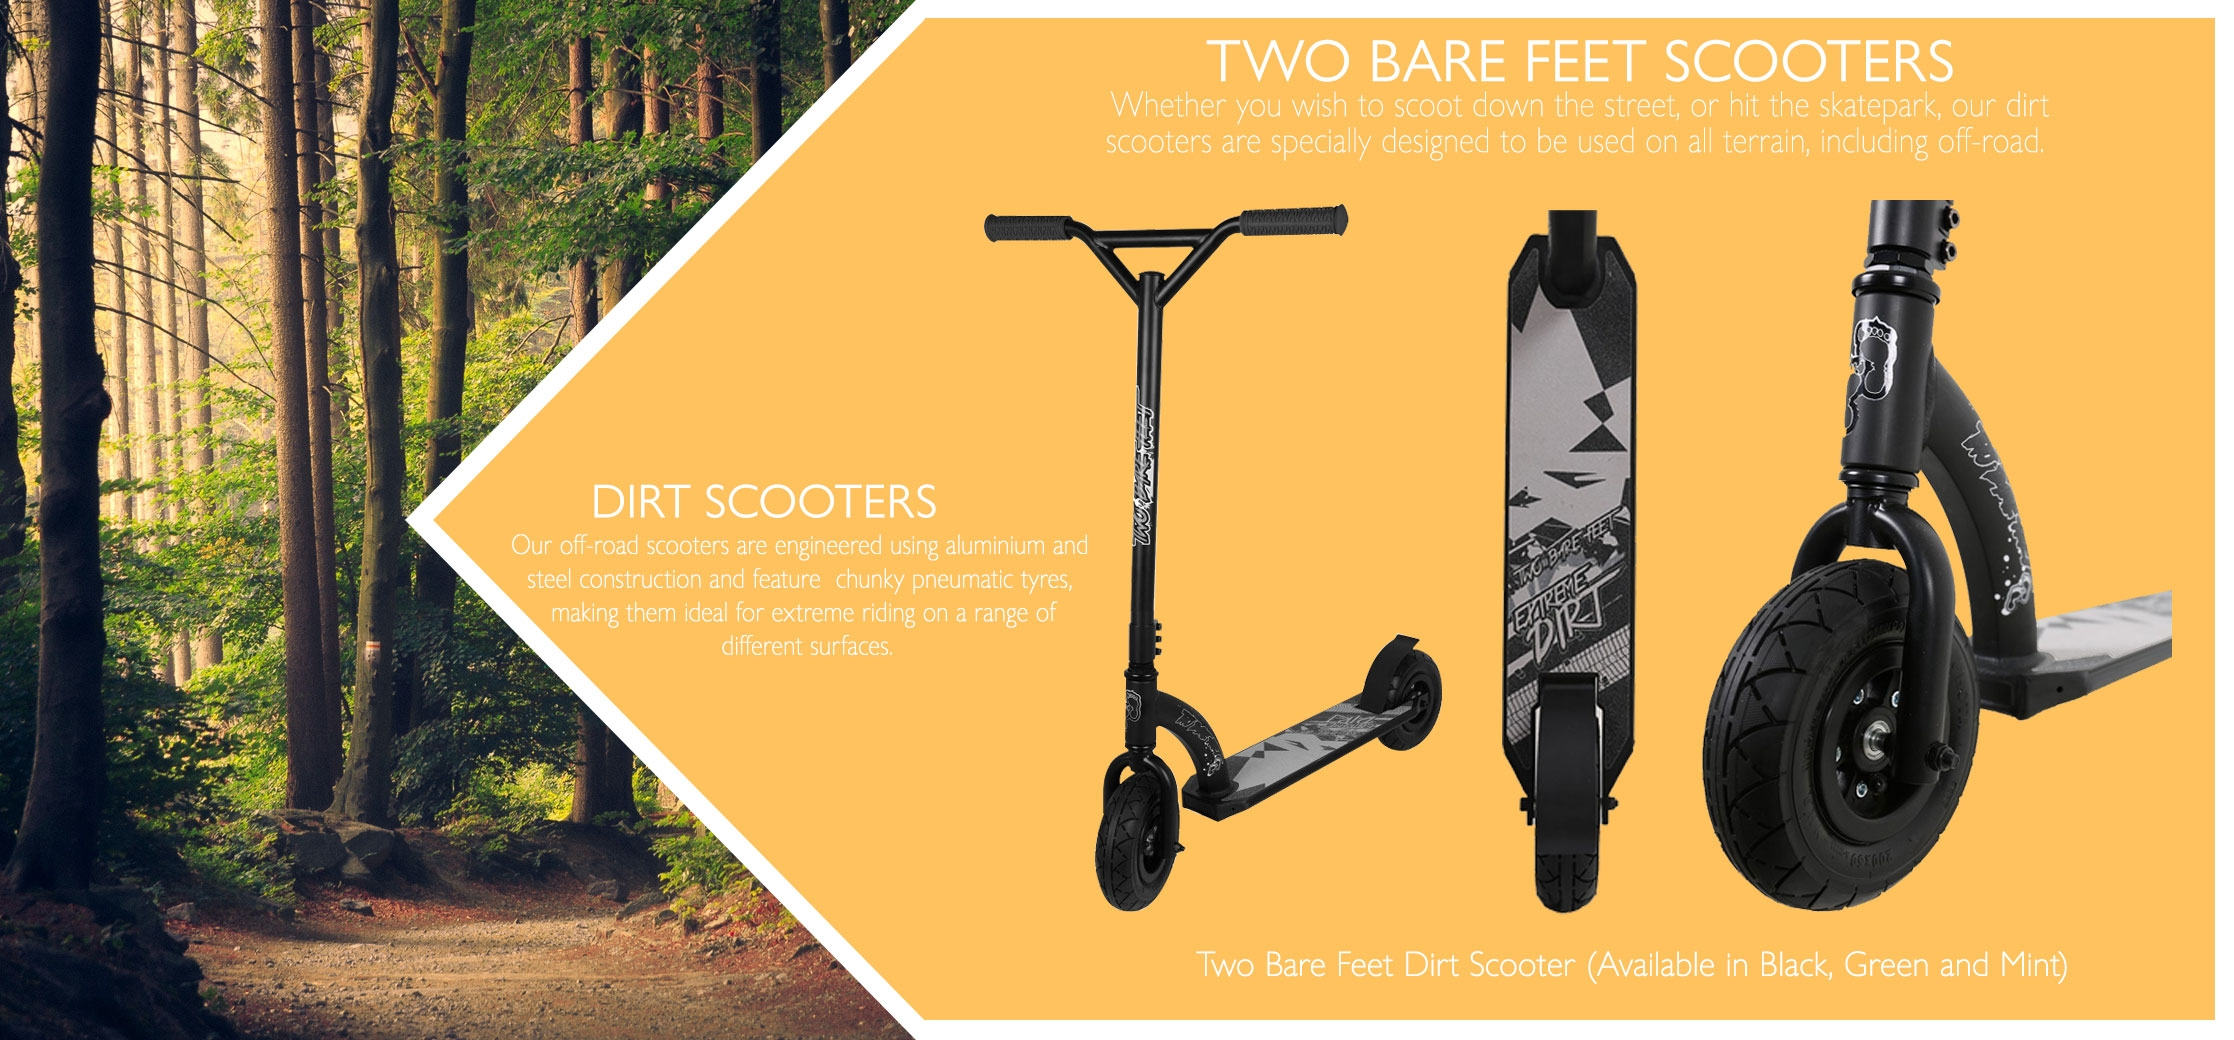 Dirt scooters info